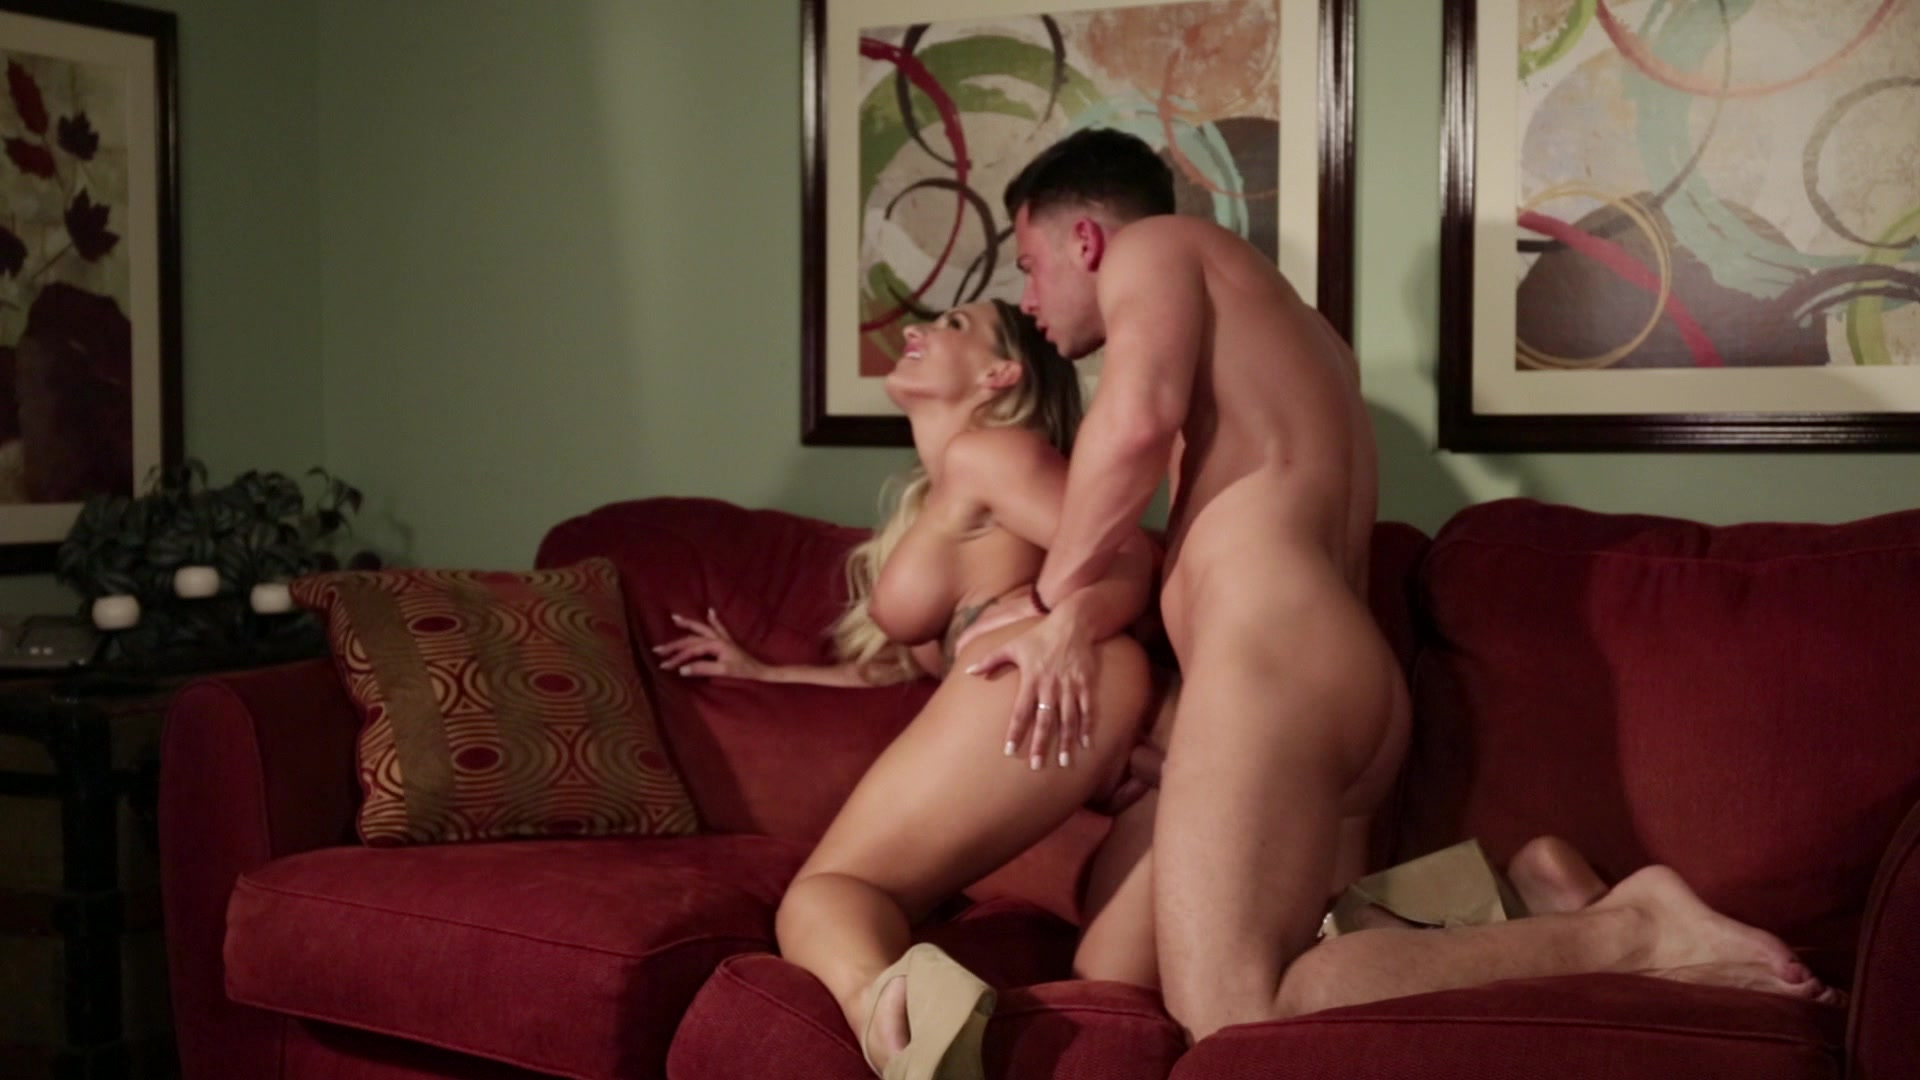 Scene with Cali Carter - image 11 out of 20